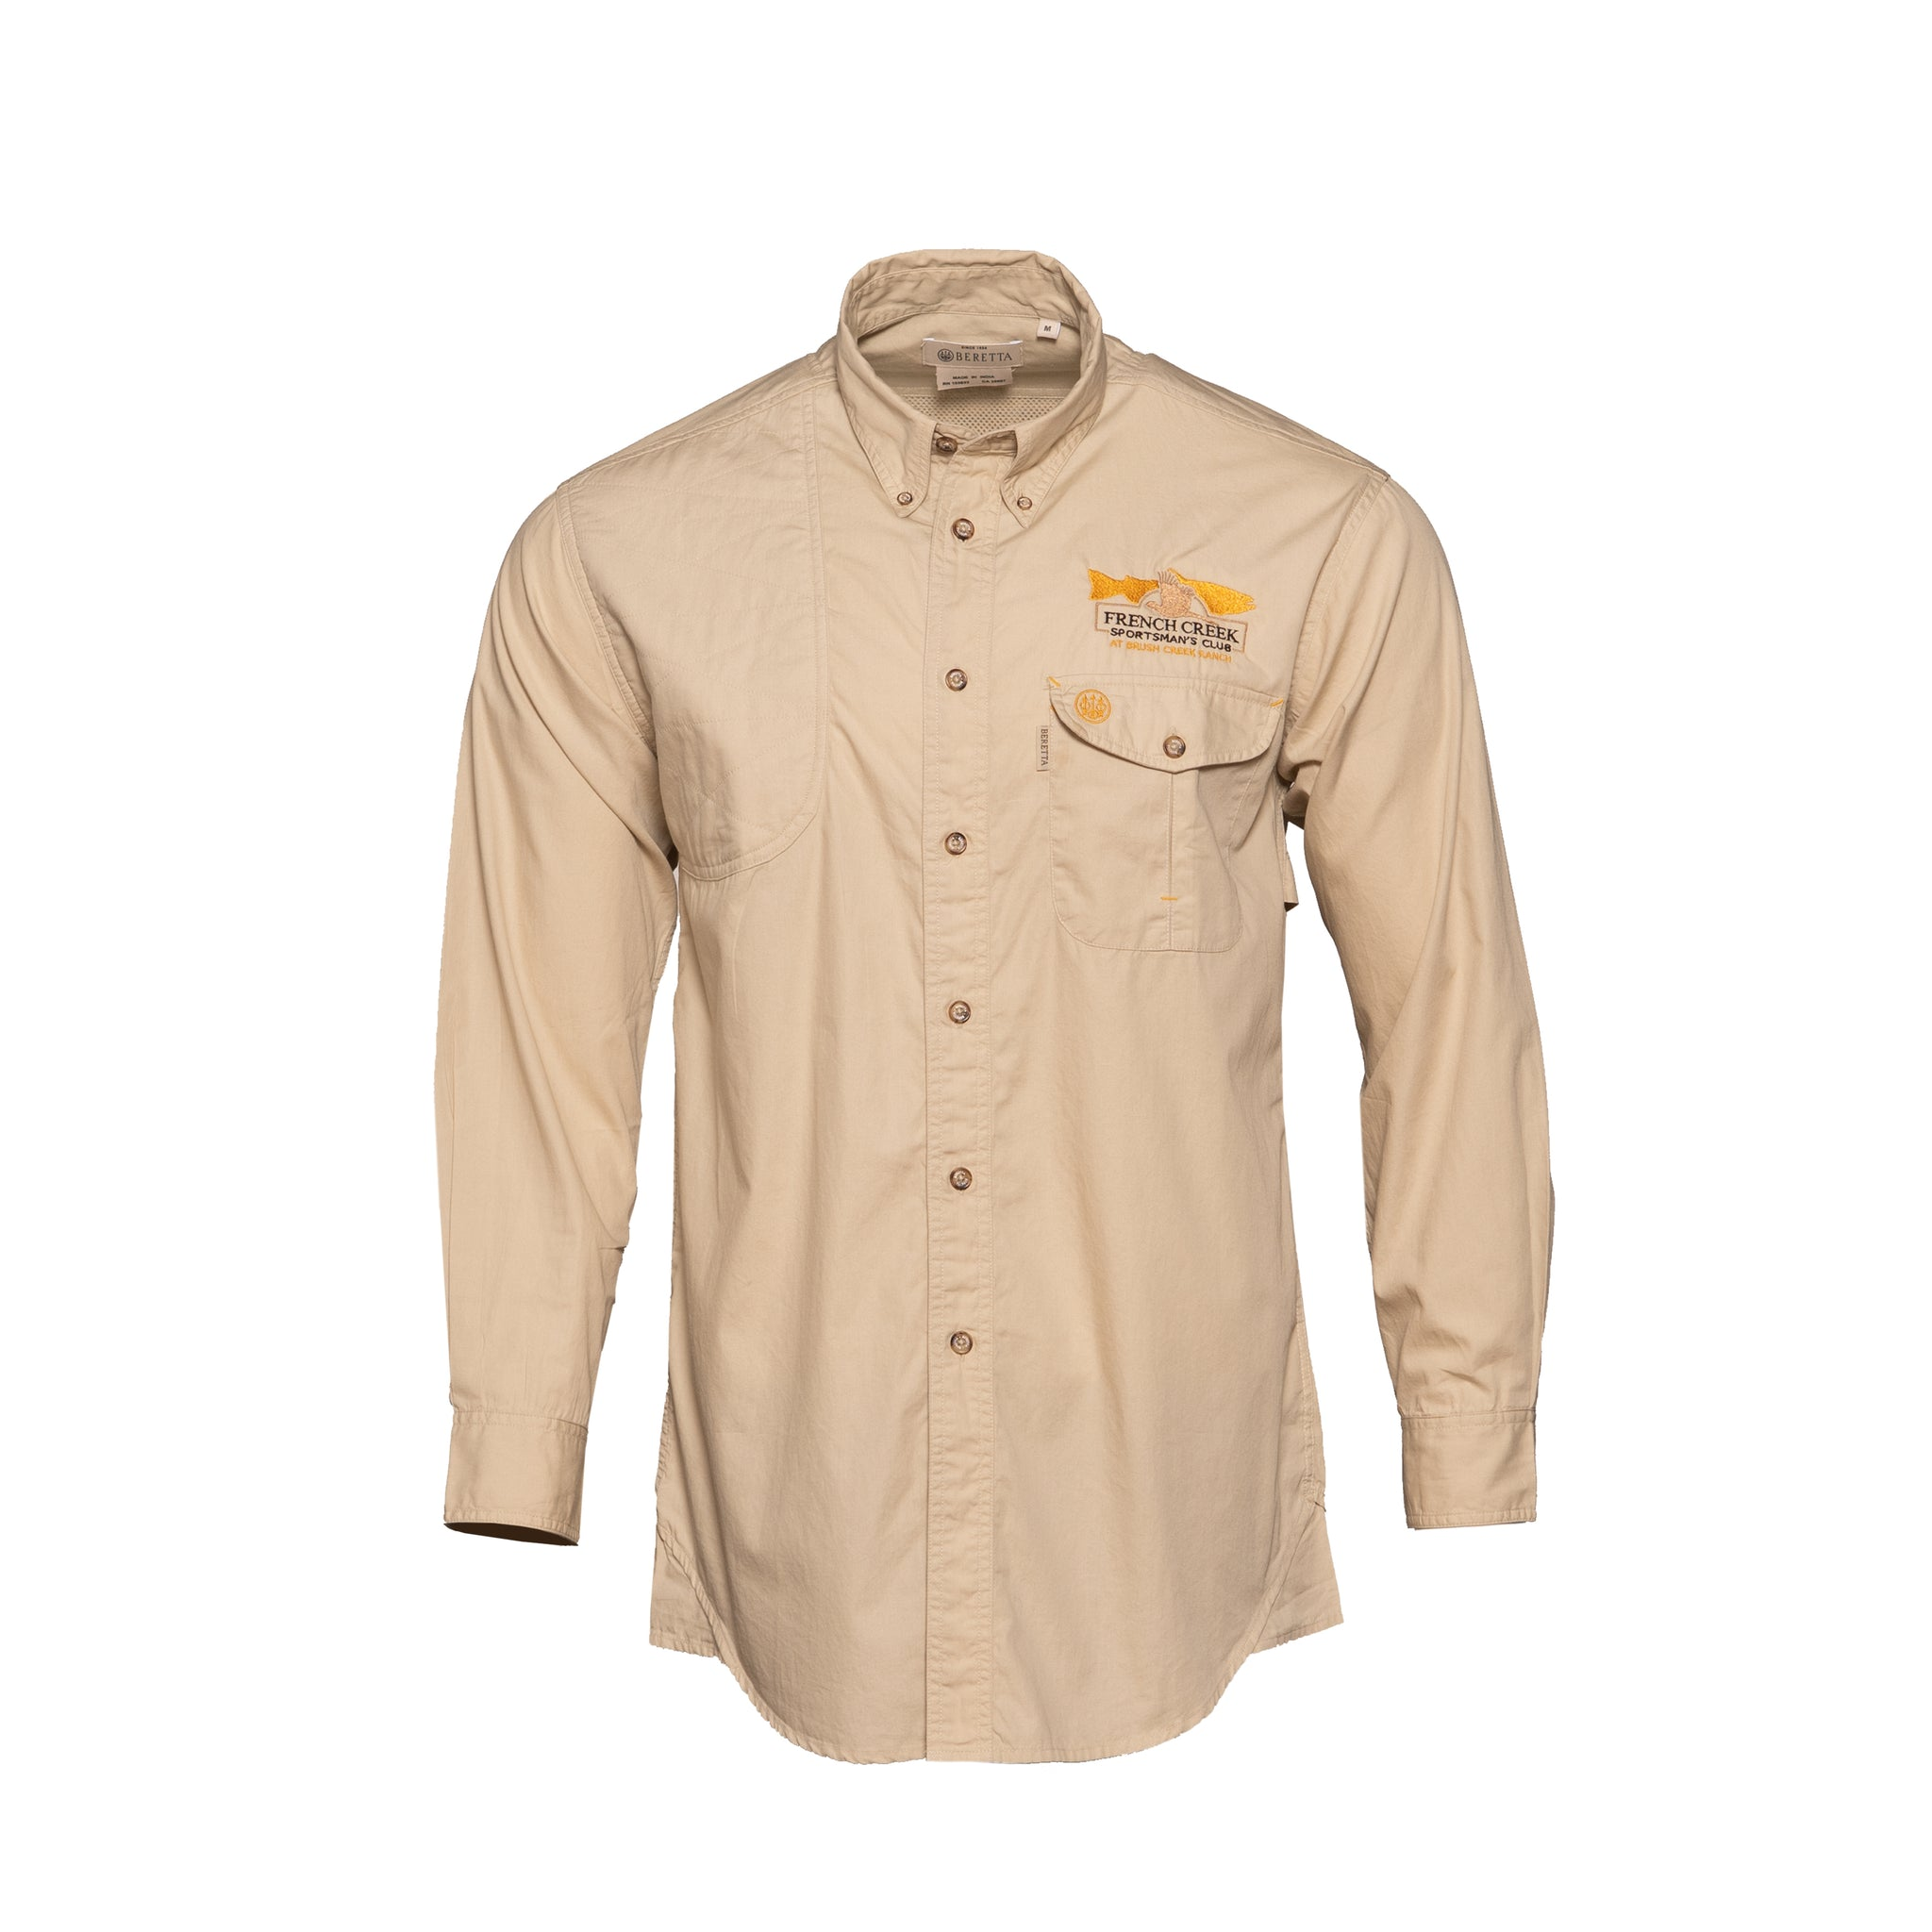 Men's Long Sleeve Shooting Shirt